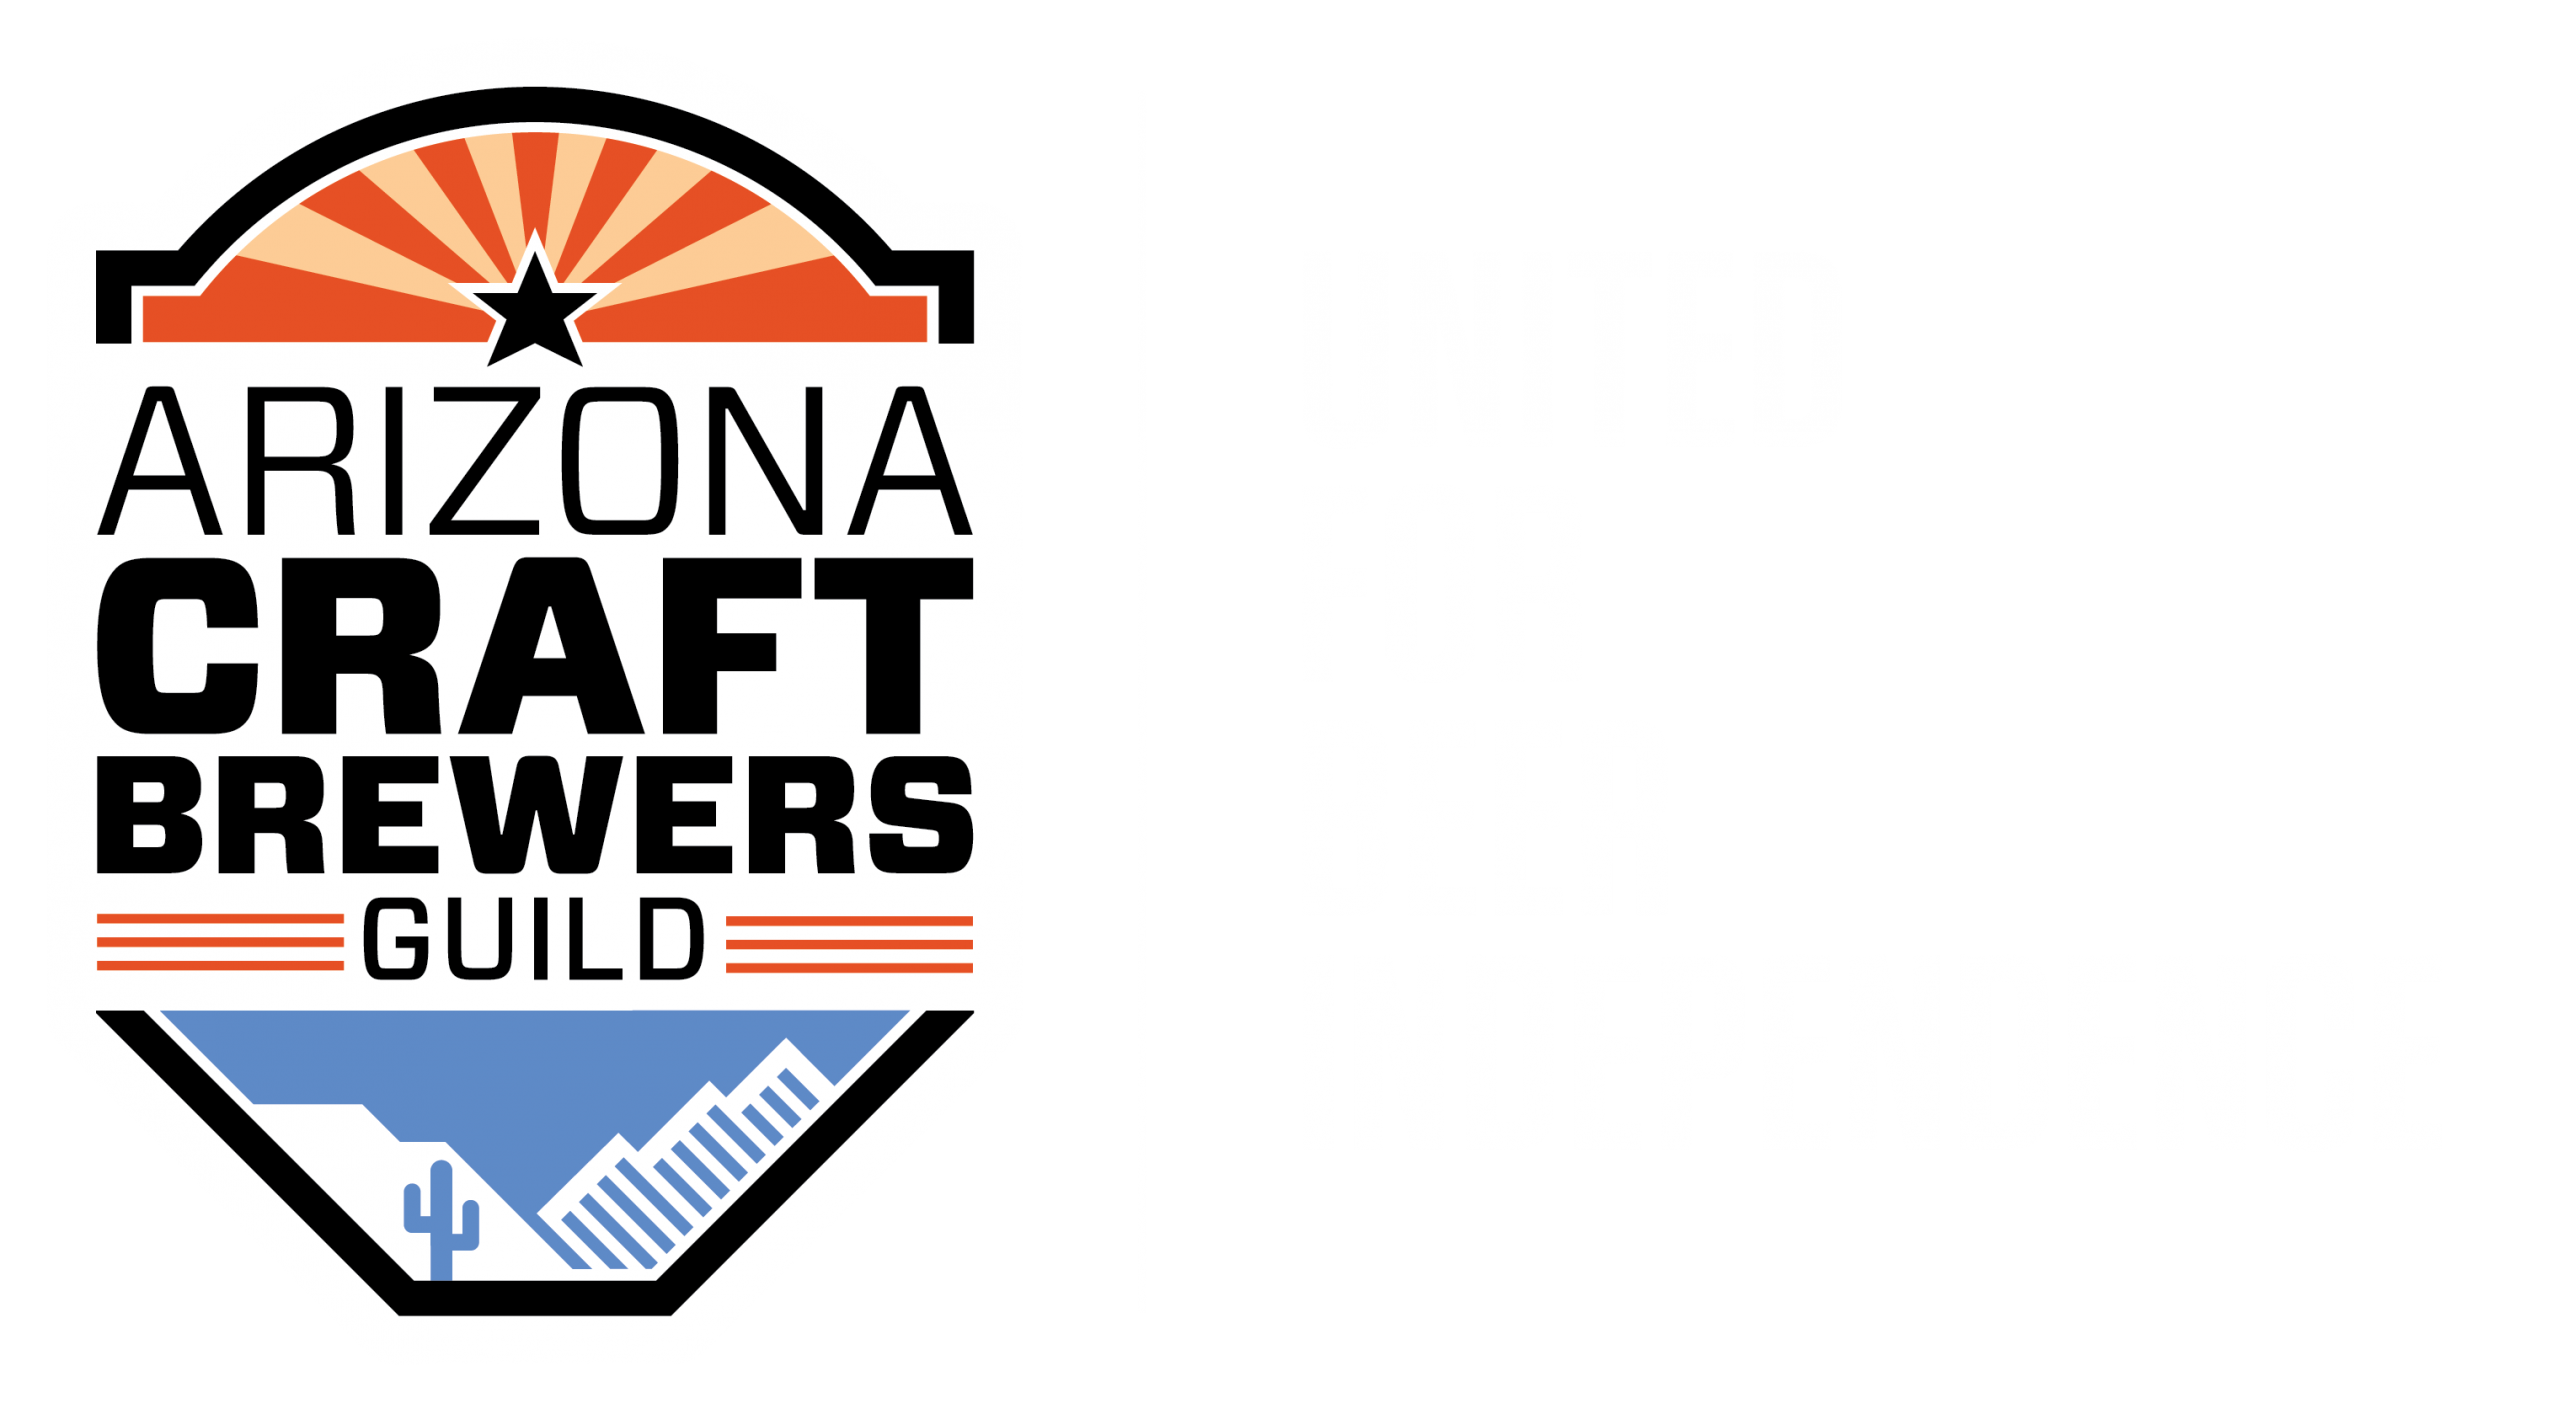 Arizona Strong Beer Festival | Arizona Craft Brewers Guild